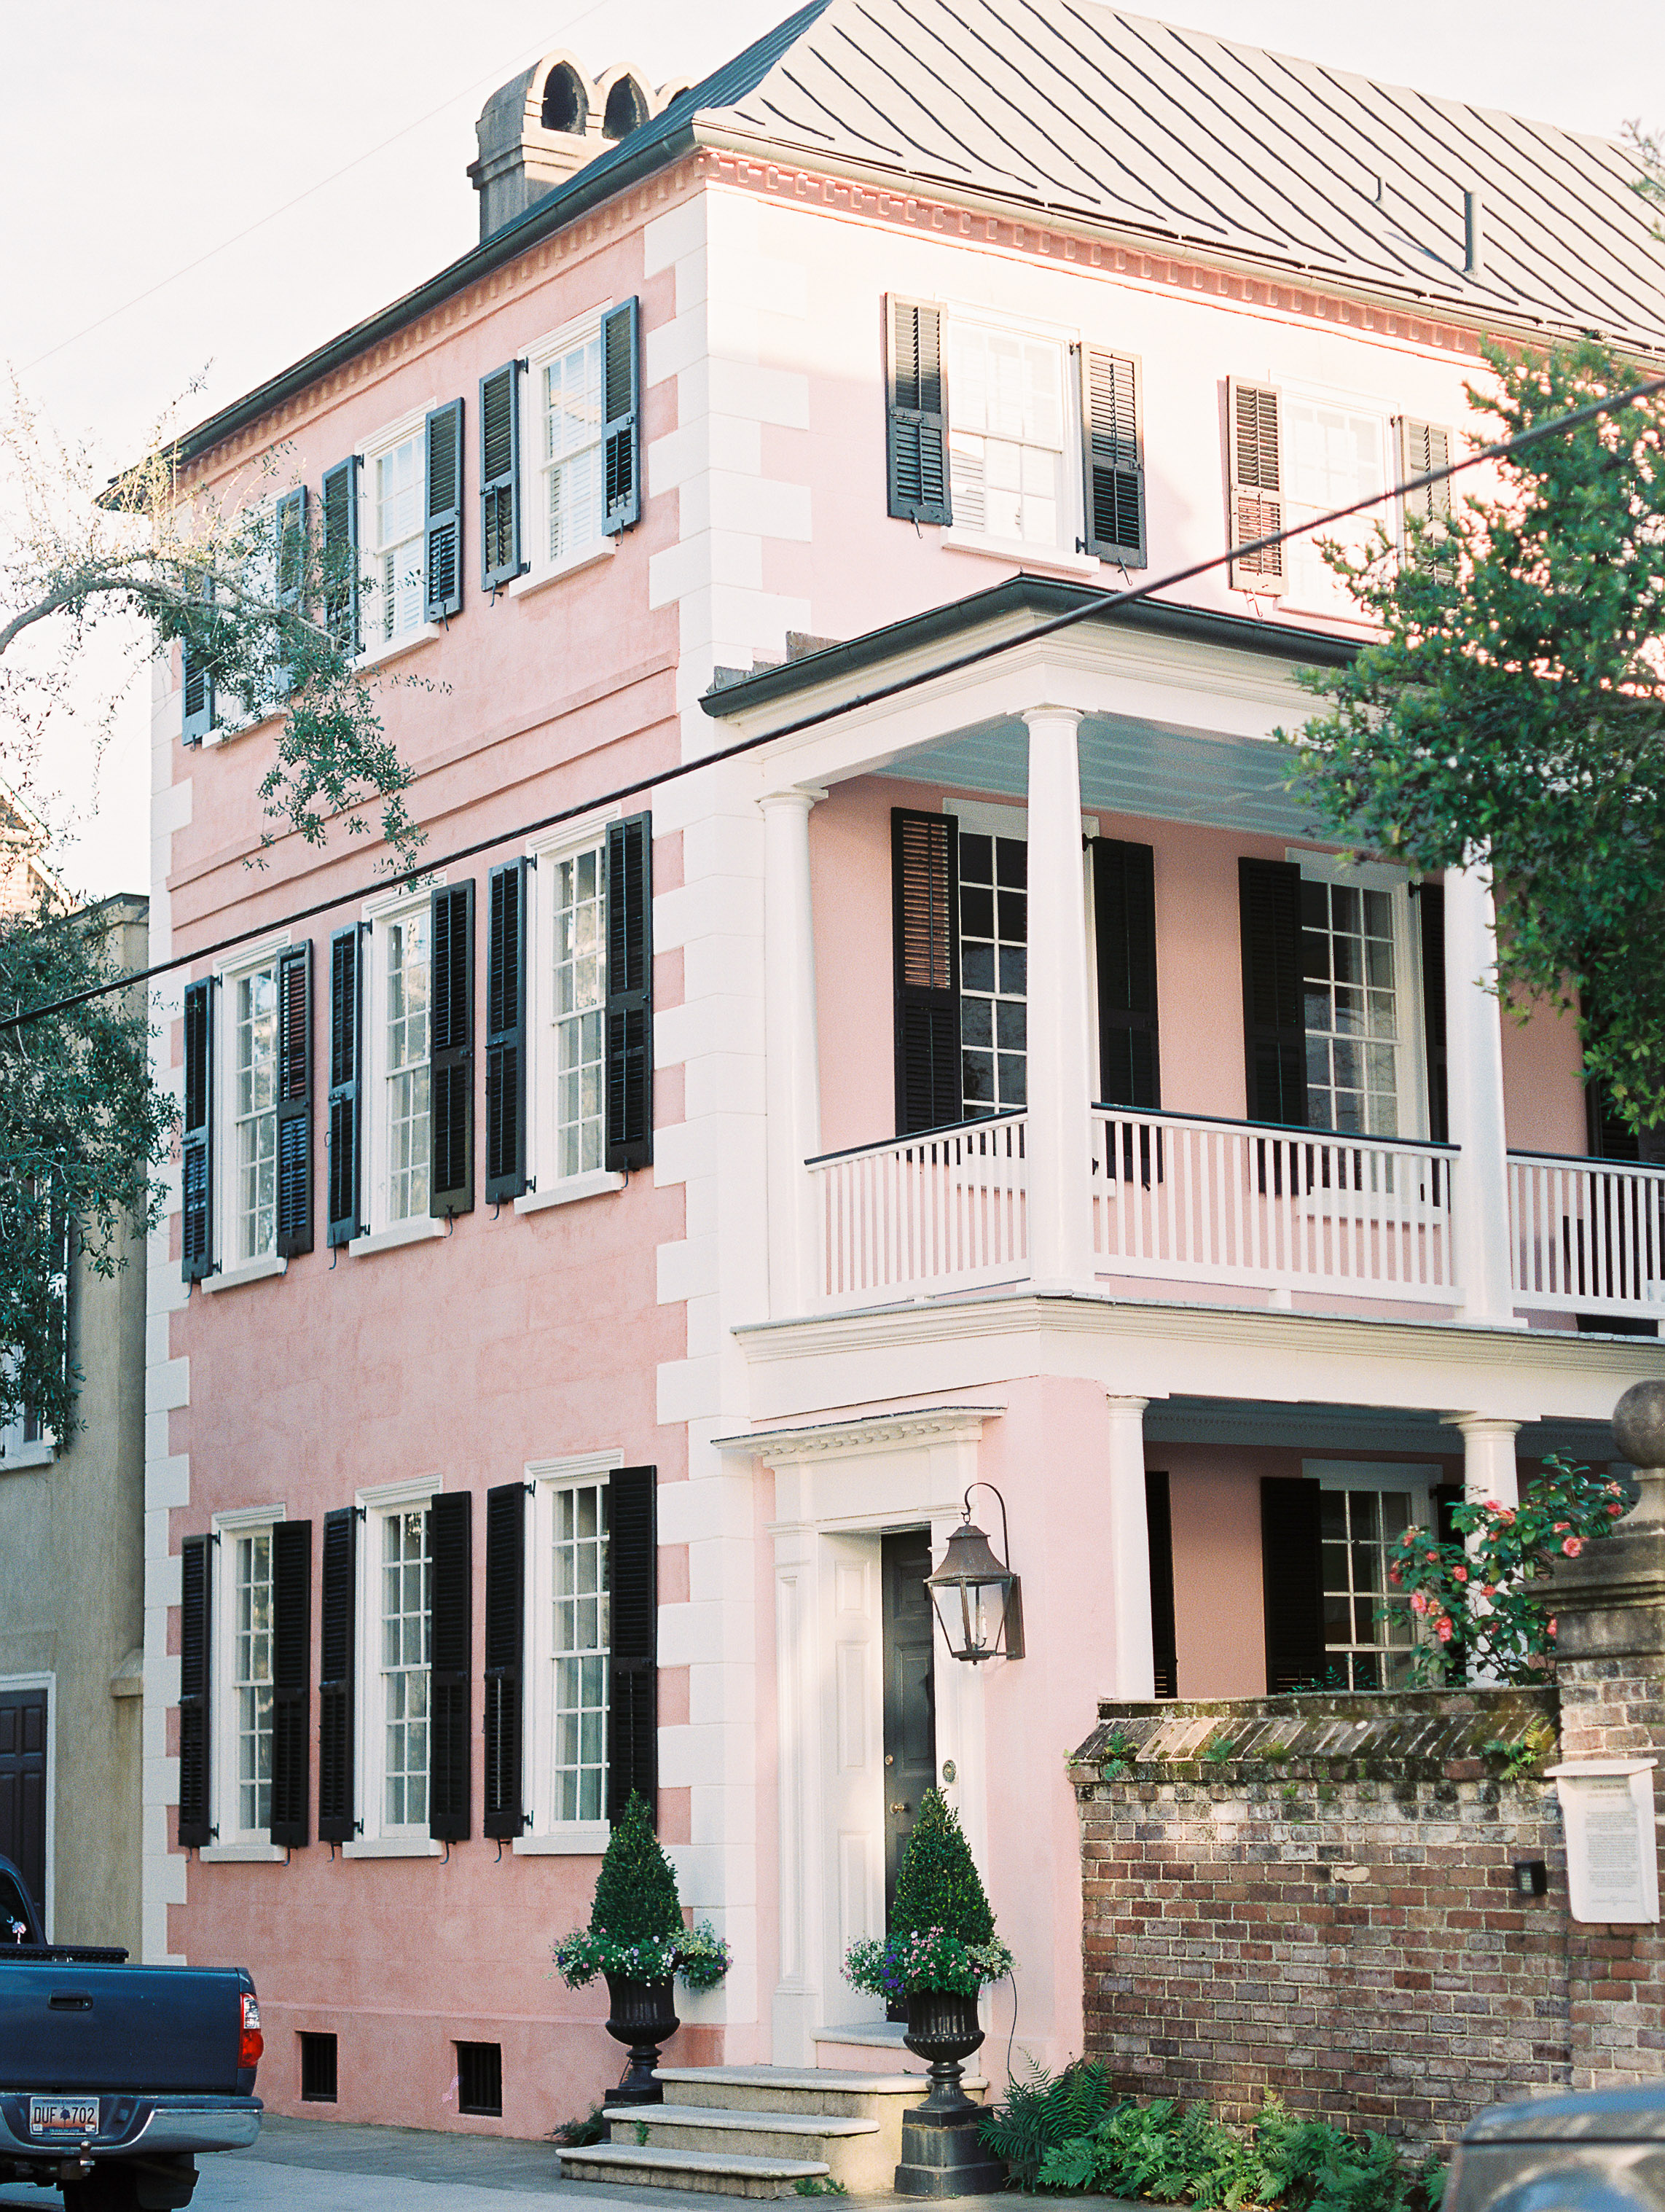 catherineannphotography-charleston-sc-026.jpg